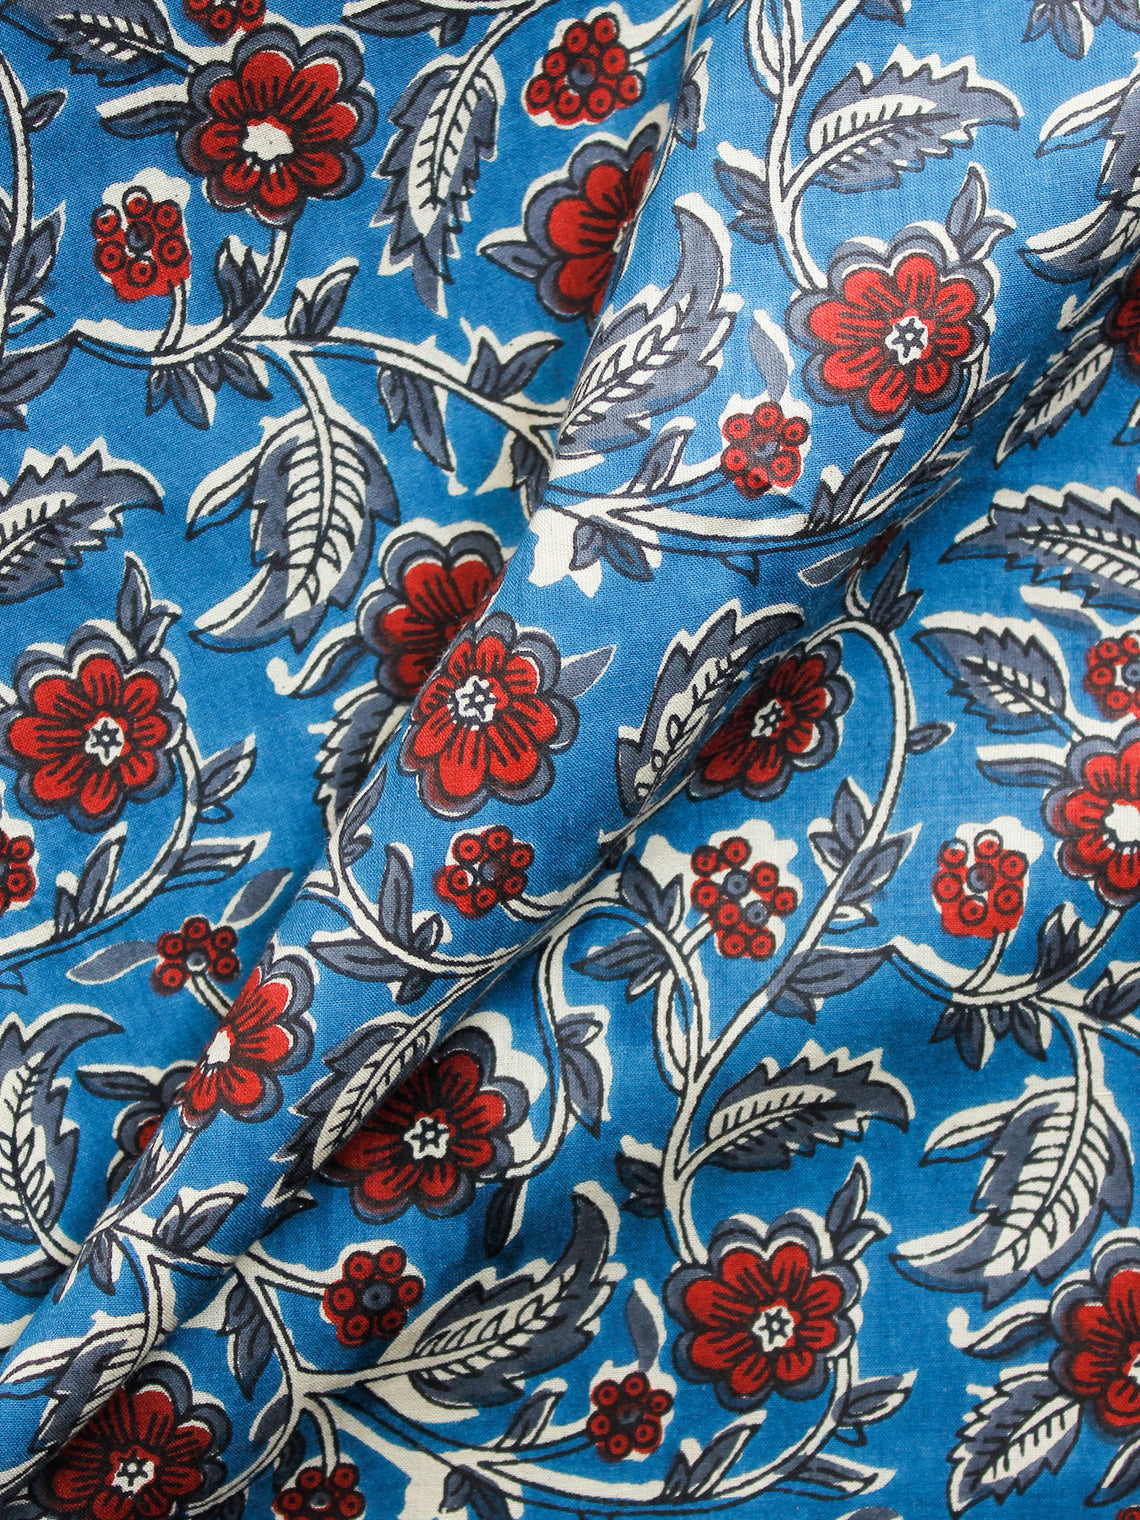 Blue White Red Grey Hand Block Printed Cotton Fabric Per Meter - F001F1482